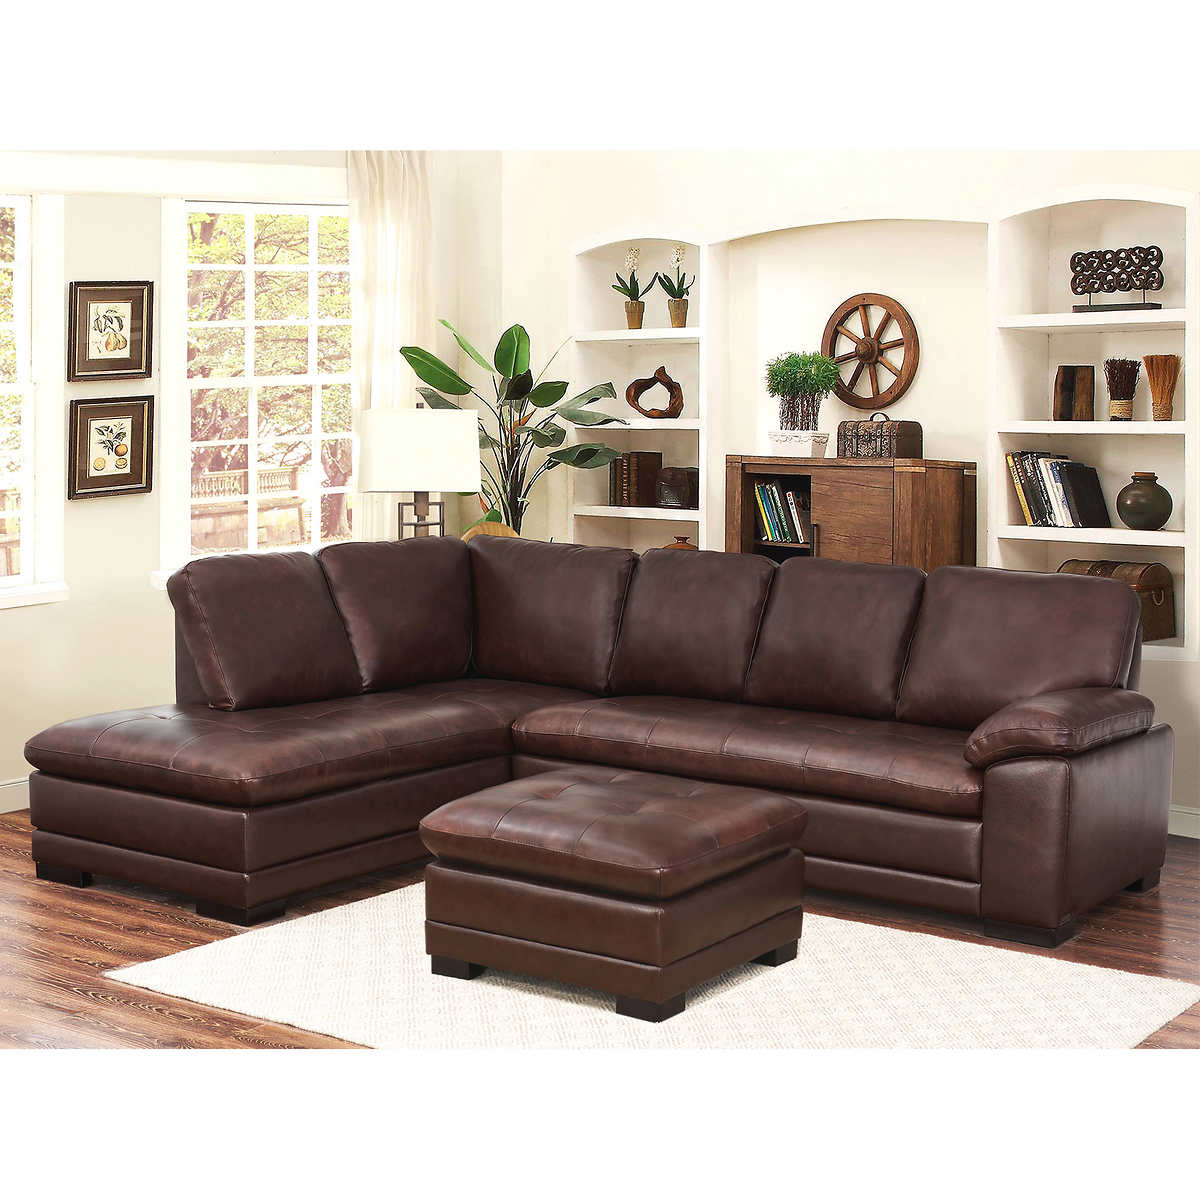 Metropolitan Top Grain Leather Sectional and Ottoman Living Room Set. Leather Sofas   Sectionals   Costco